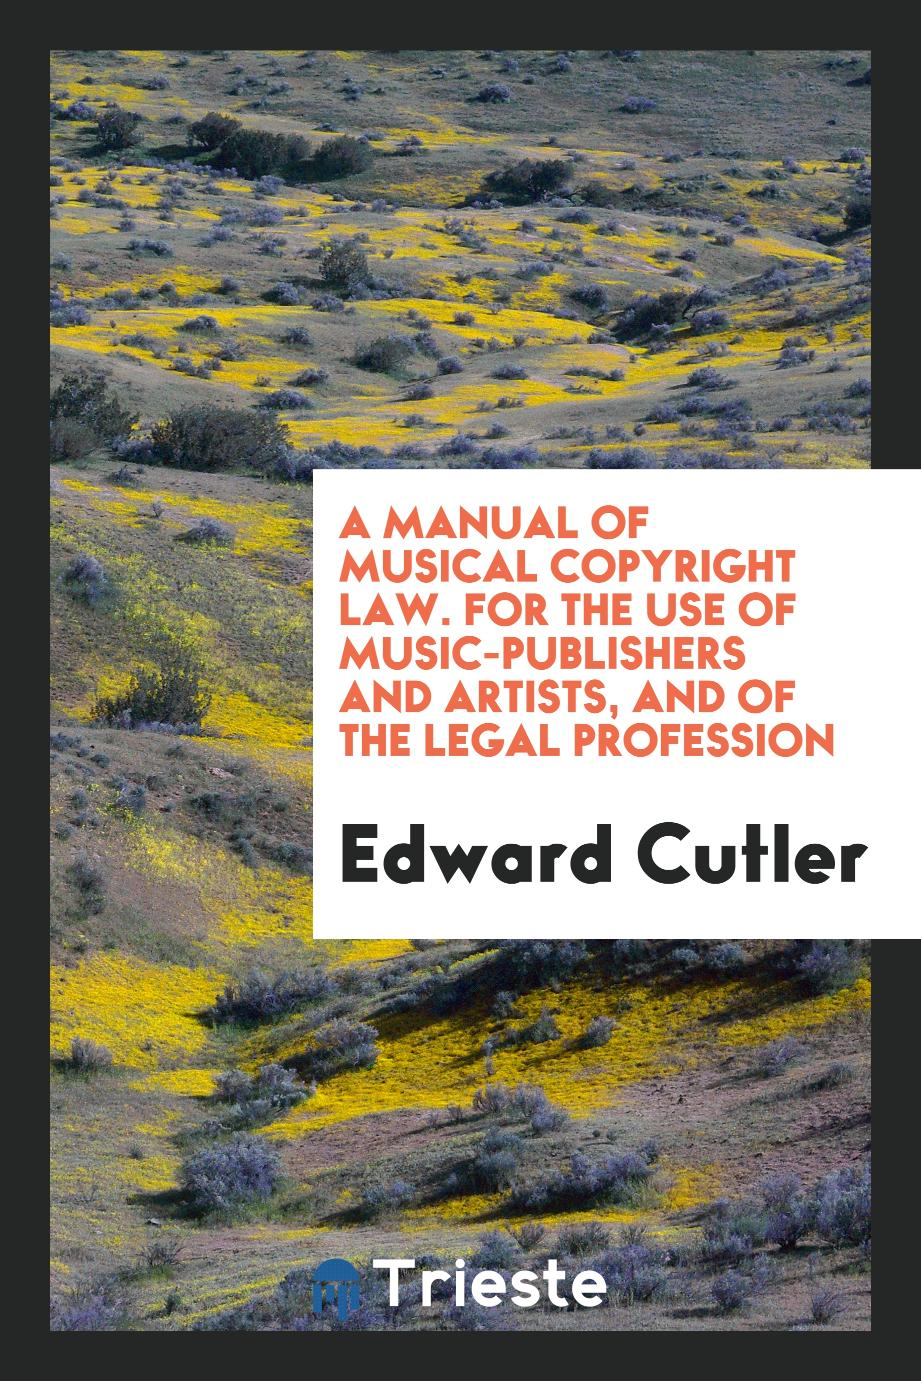 A manual of musical copyright law. For the use of music-publishers and artists, and of the legal profession